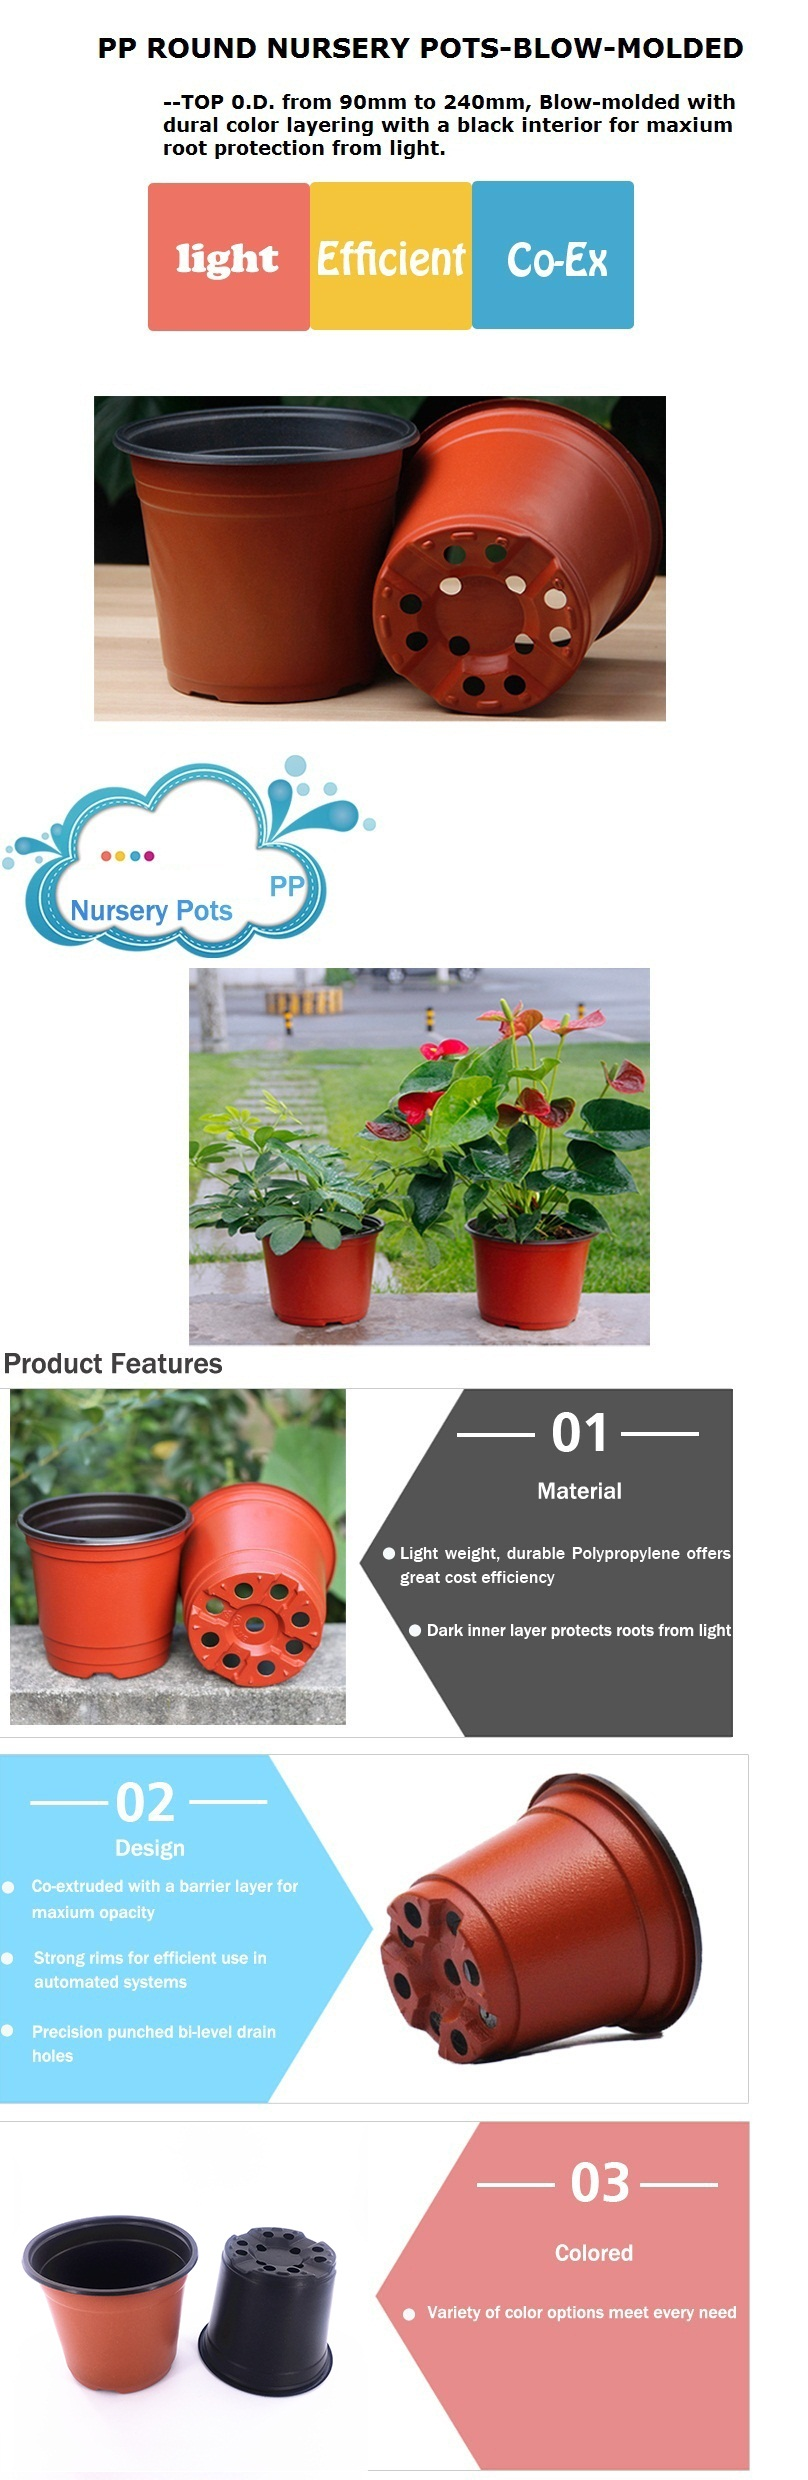 Hot sale plastic black round 6 inch blow molding plastic pot, plant nursery gardening pots for orchid